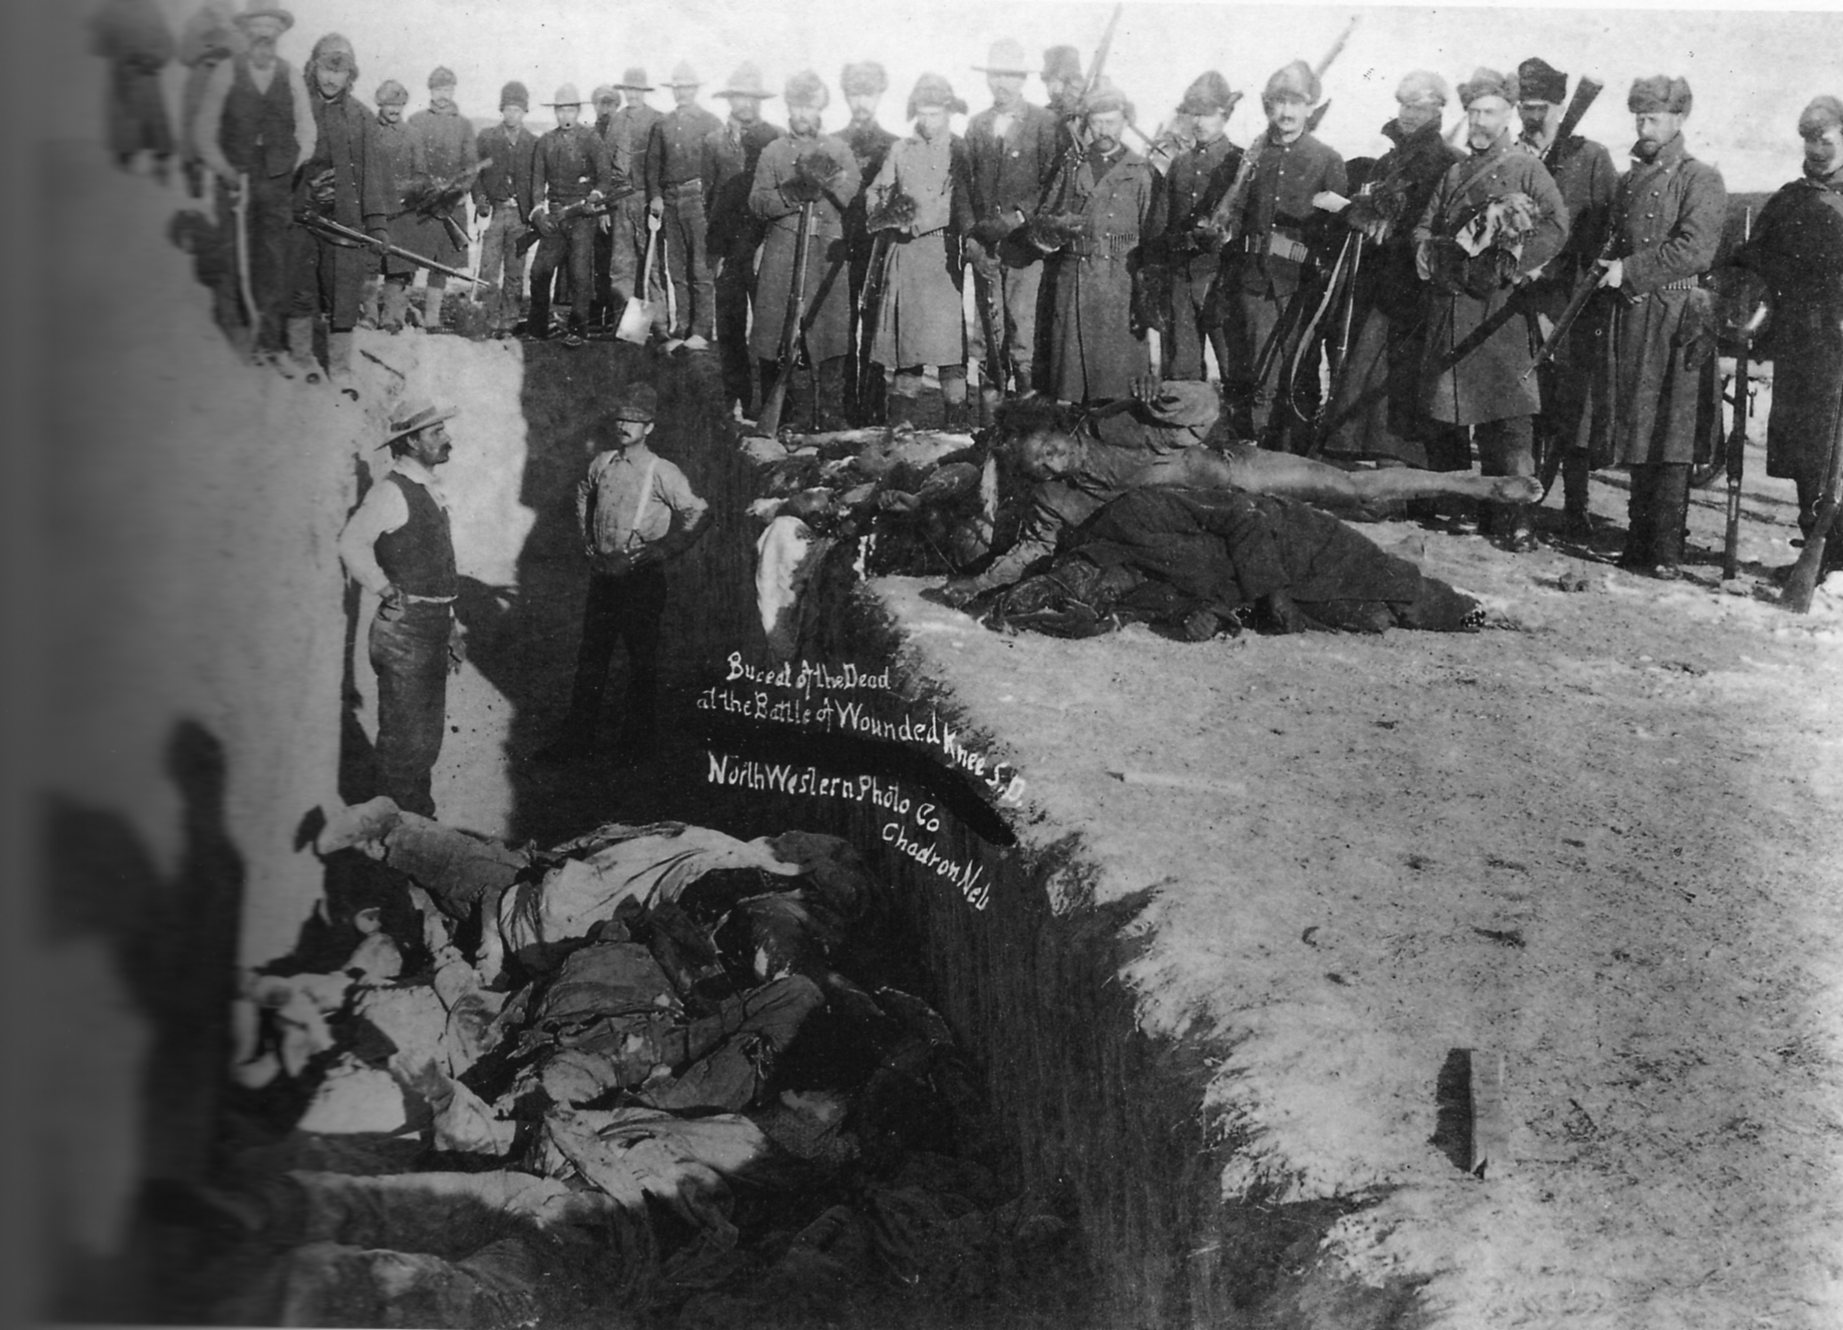 Mark Charles: United States continues to honor war crimes at Wounded Knee